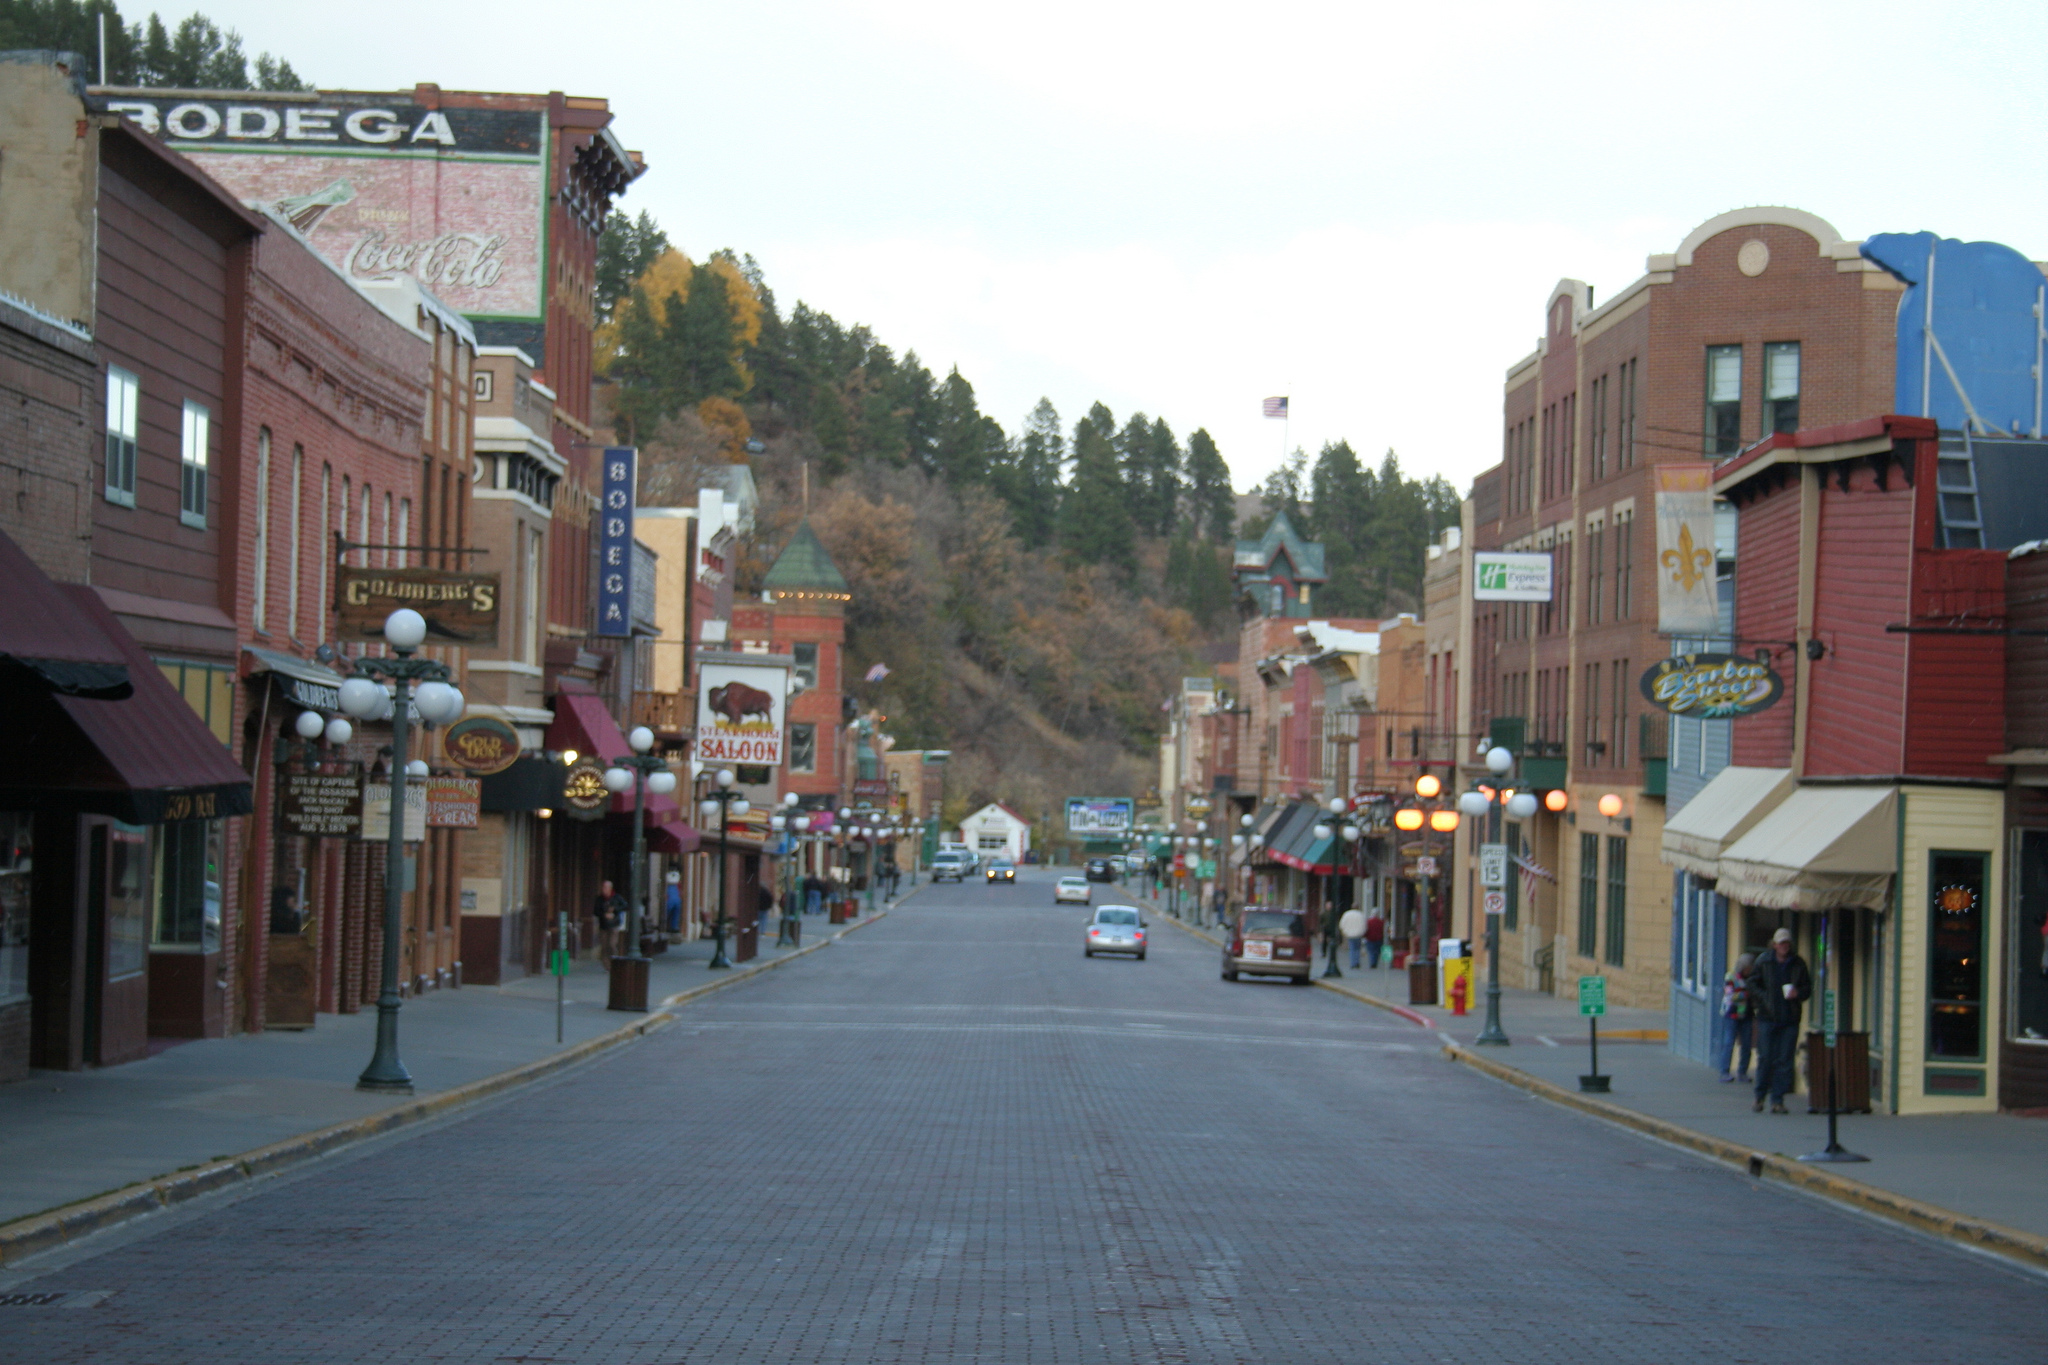 10 of the most charming small towns in south dakota for Small towns in tennessee near memphis